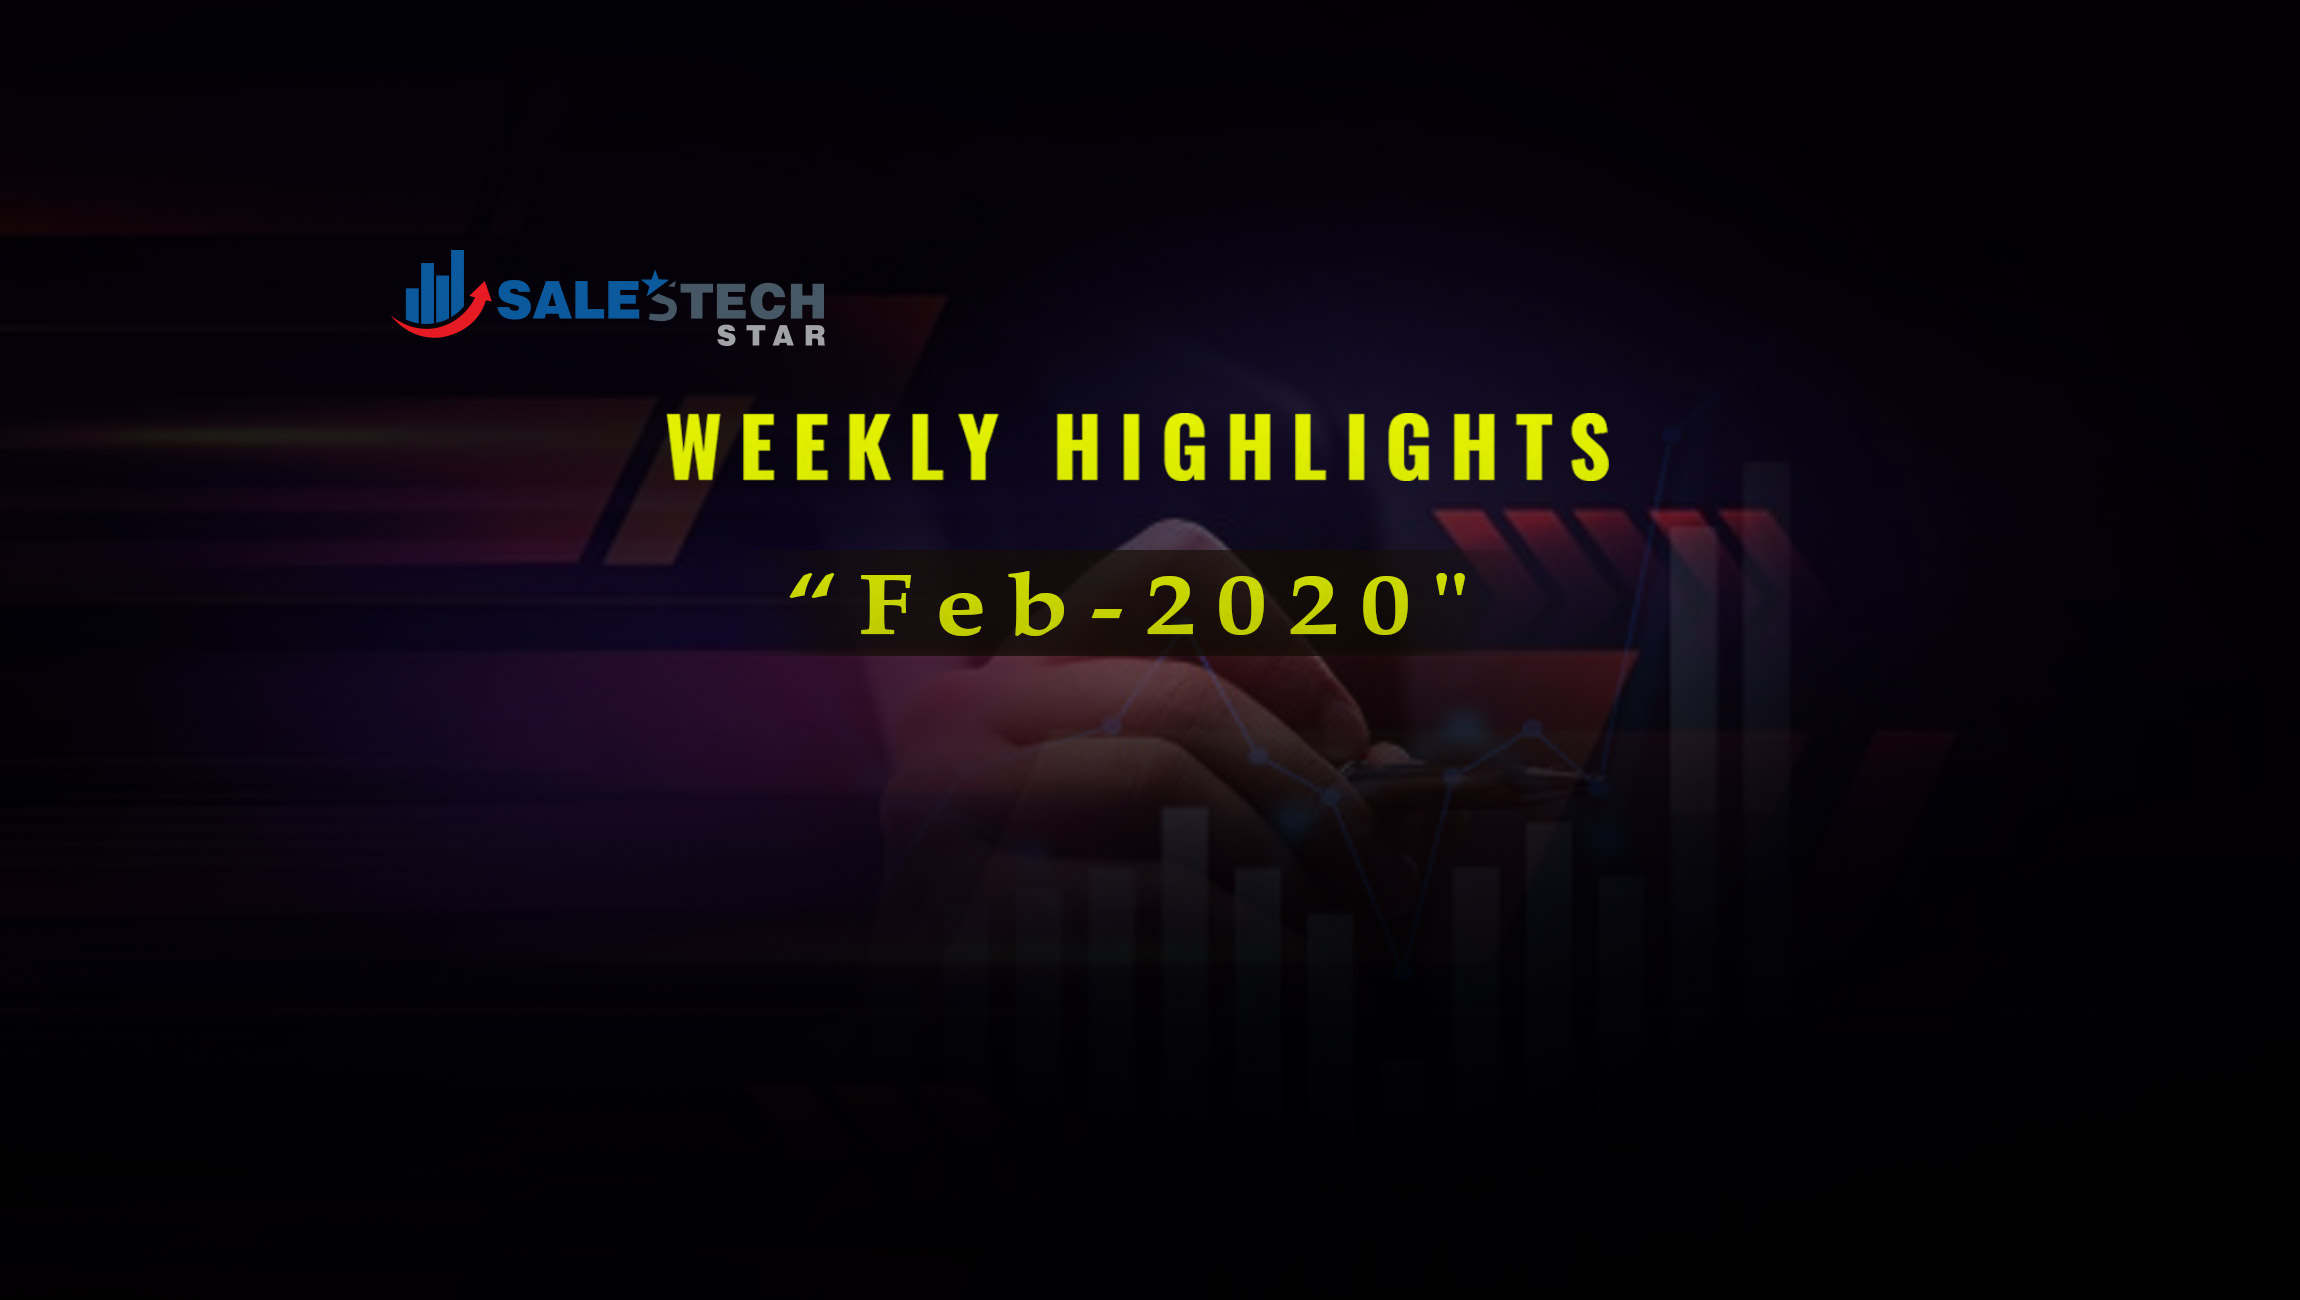 Top SalesTech News Of The Week - 3rd February 2020 - Feat. - News from Allego, Hushly, Aquaint, and More